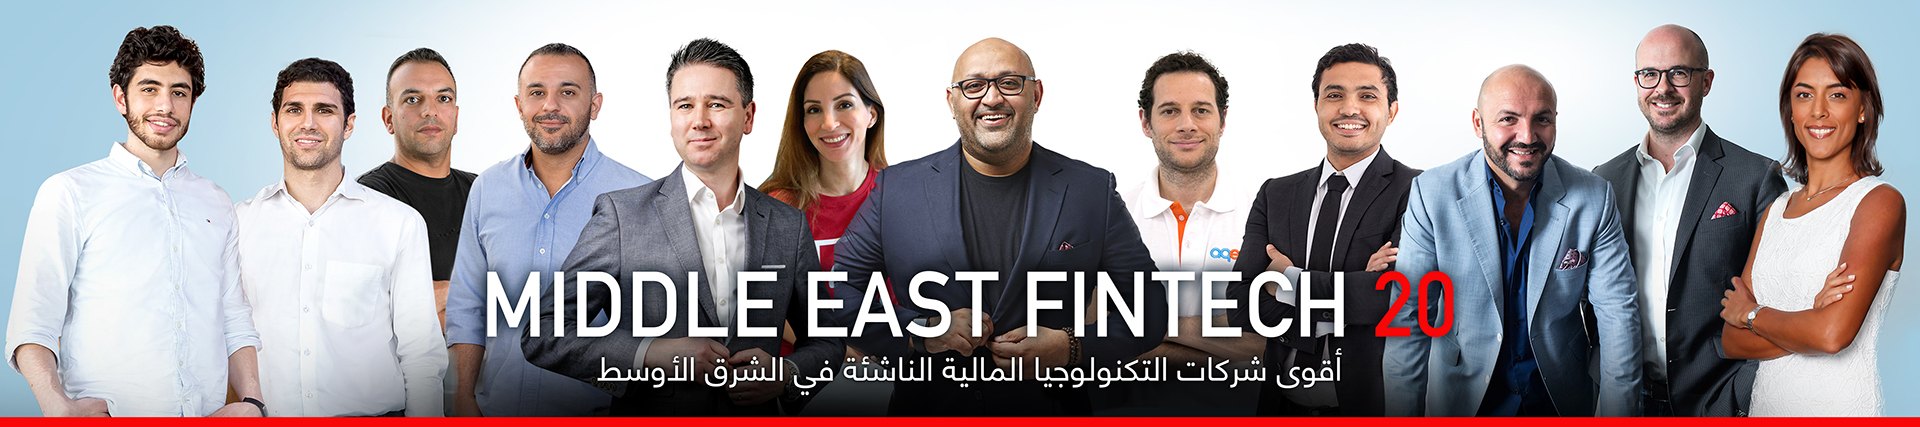 MIDDLE EAST FINTECH 20